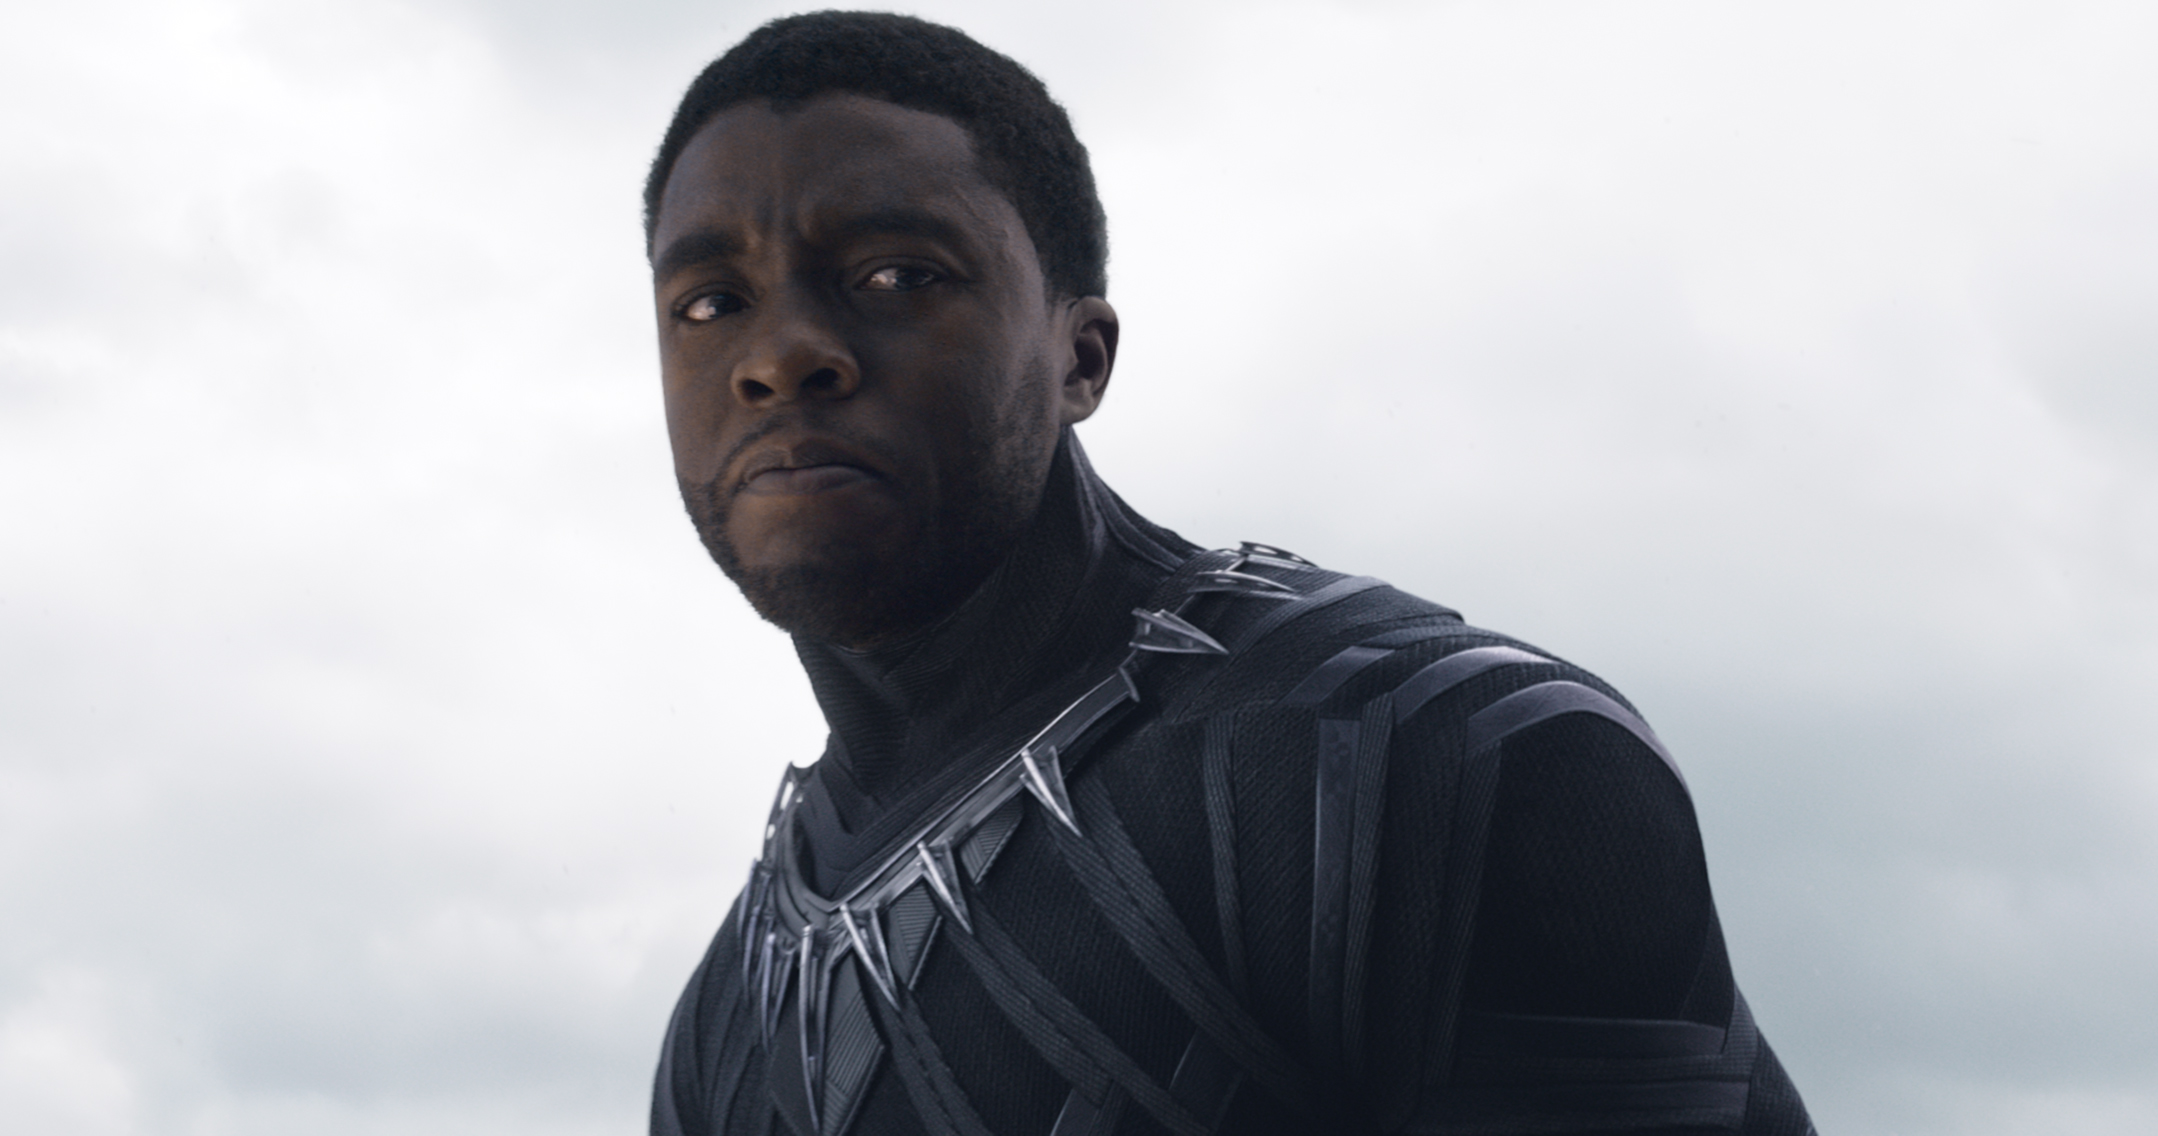 A Major Marvel Villain Confirmed In The Black Panther Solo Movie